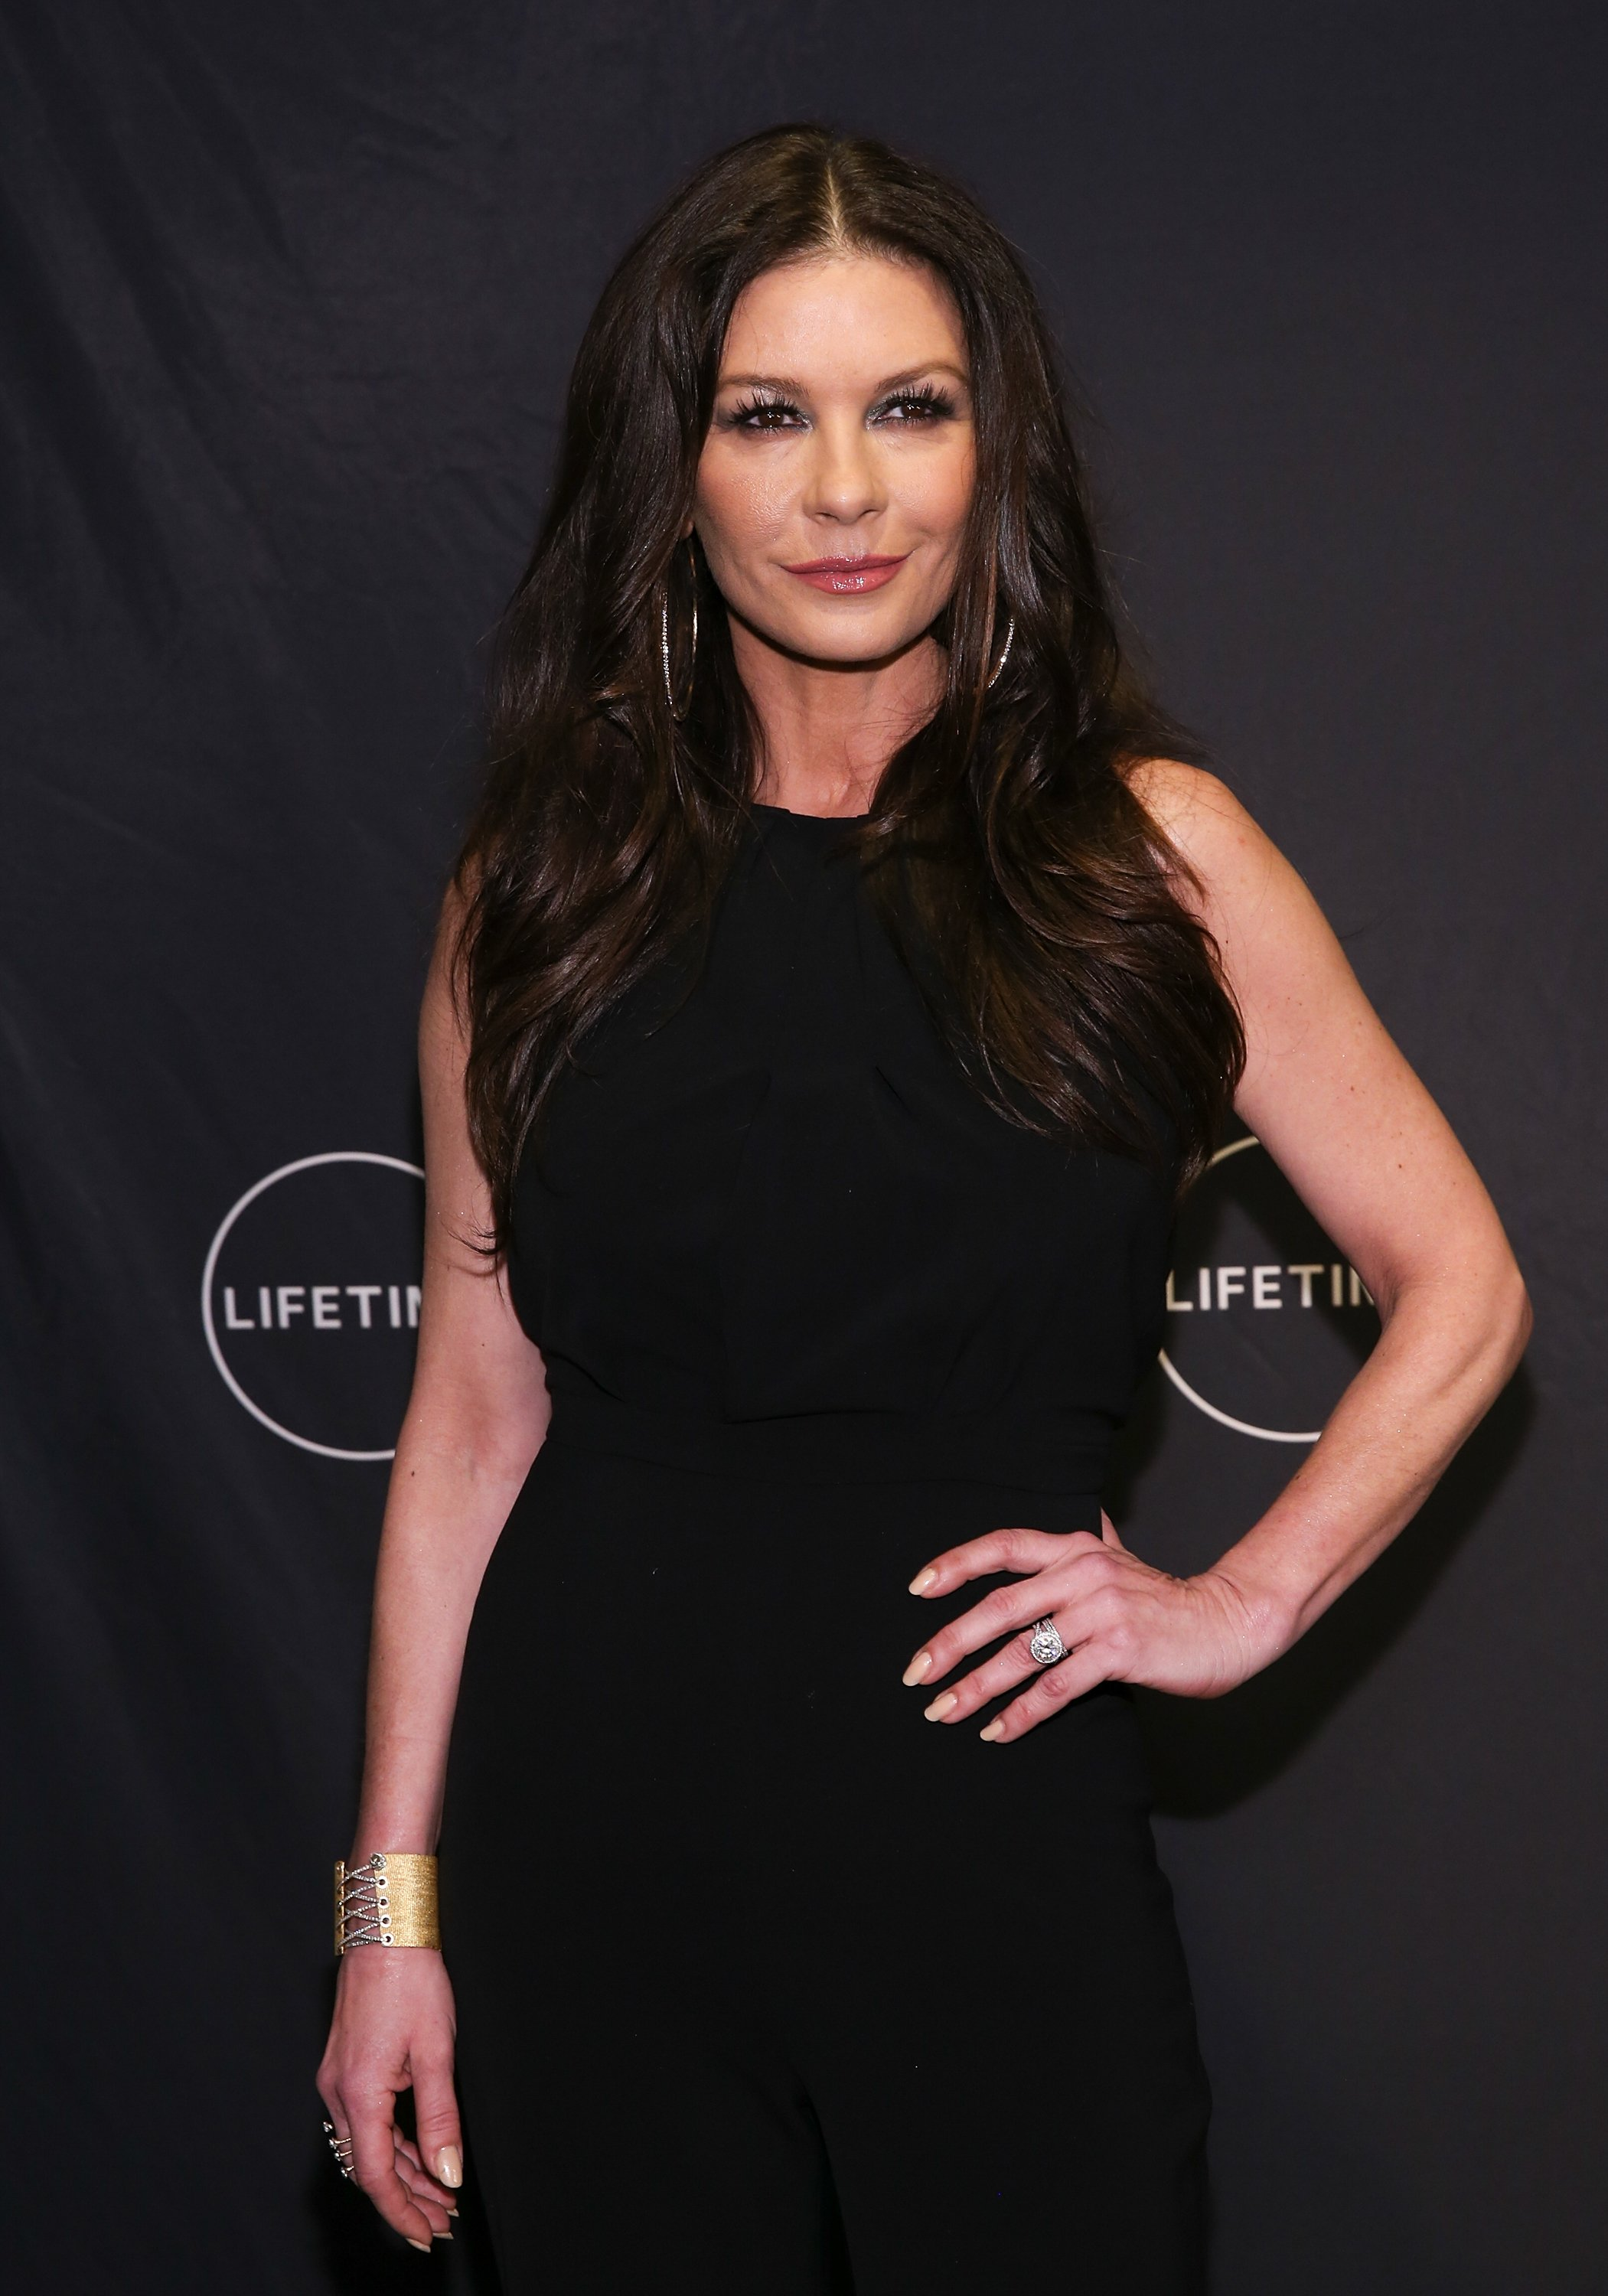 """Image Credits: Getty Images / Bennett Raglin 